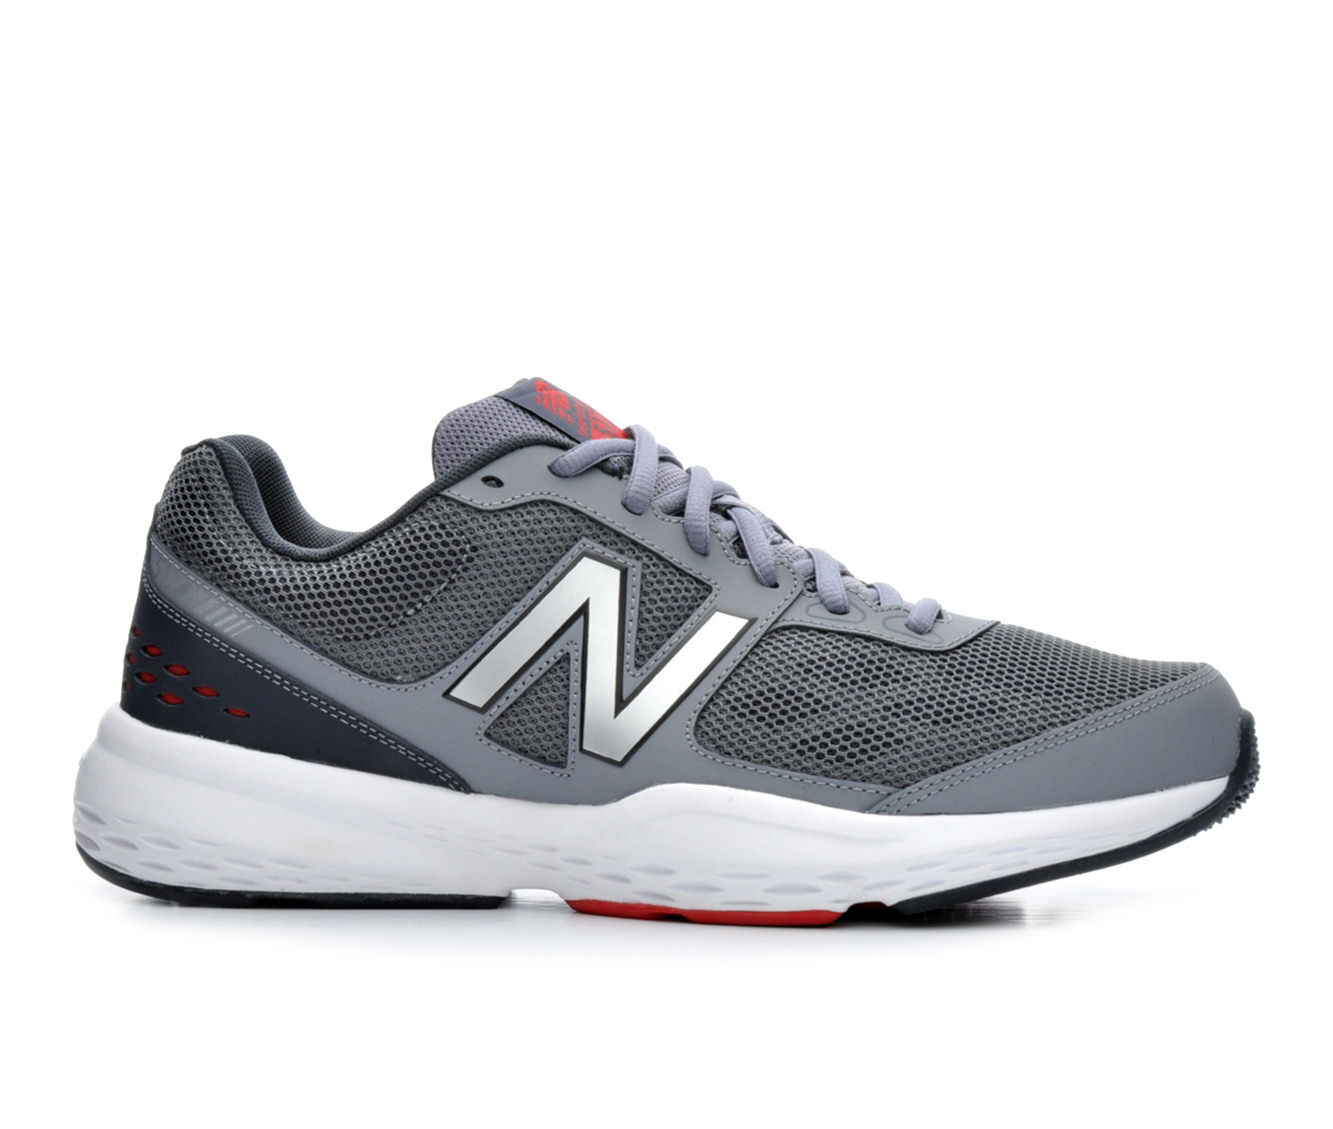 Men's New Balance MX517 Training Shoes Gry/Wht/Red